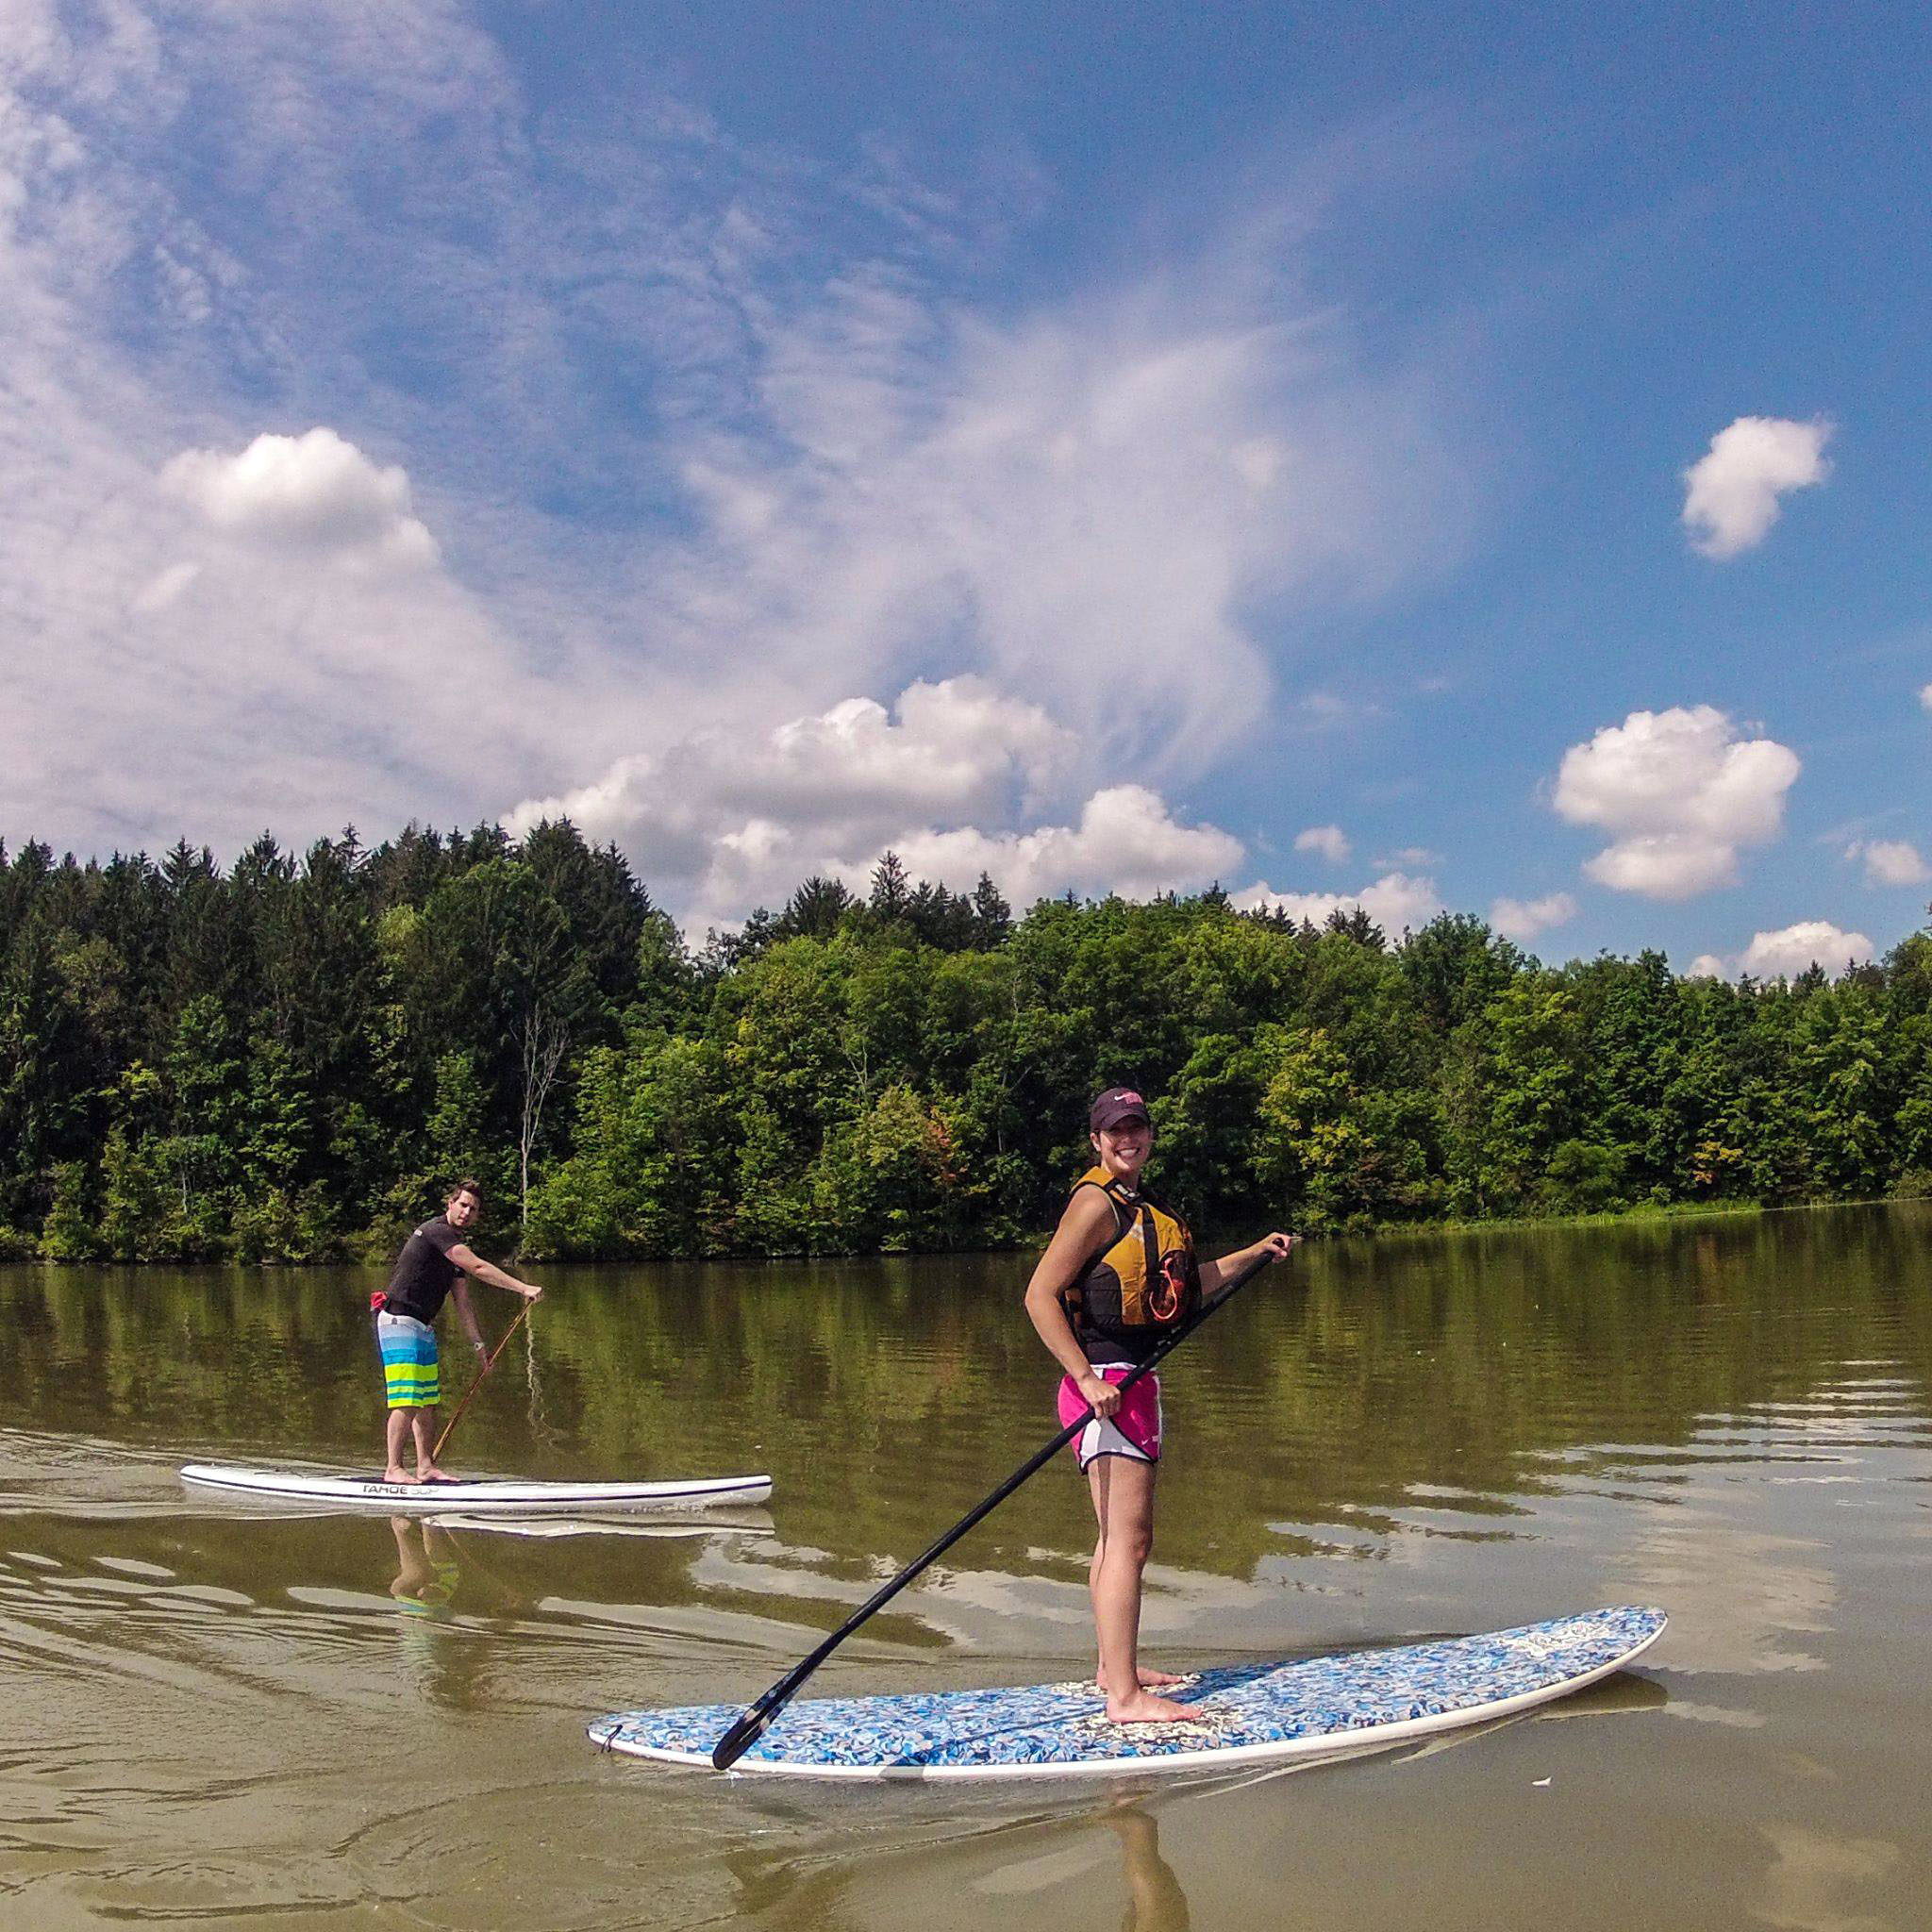 STAY FIT AND HAVE FUN WITH WATER RECREATION IN CLEVELAND METROPARKS